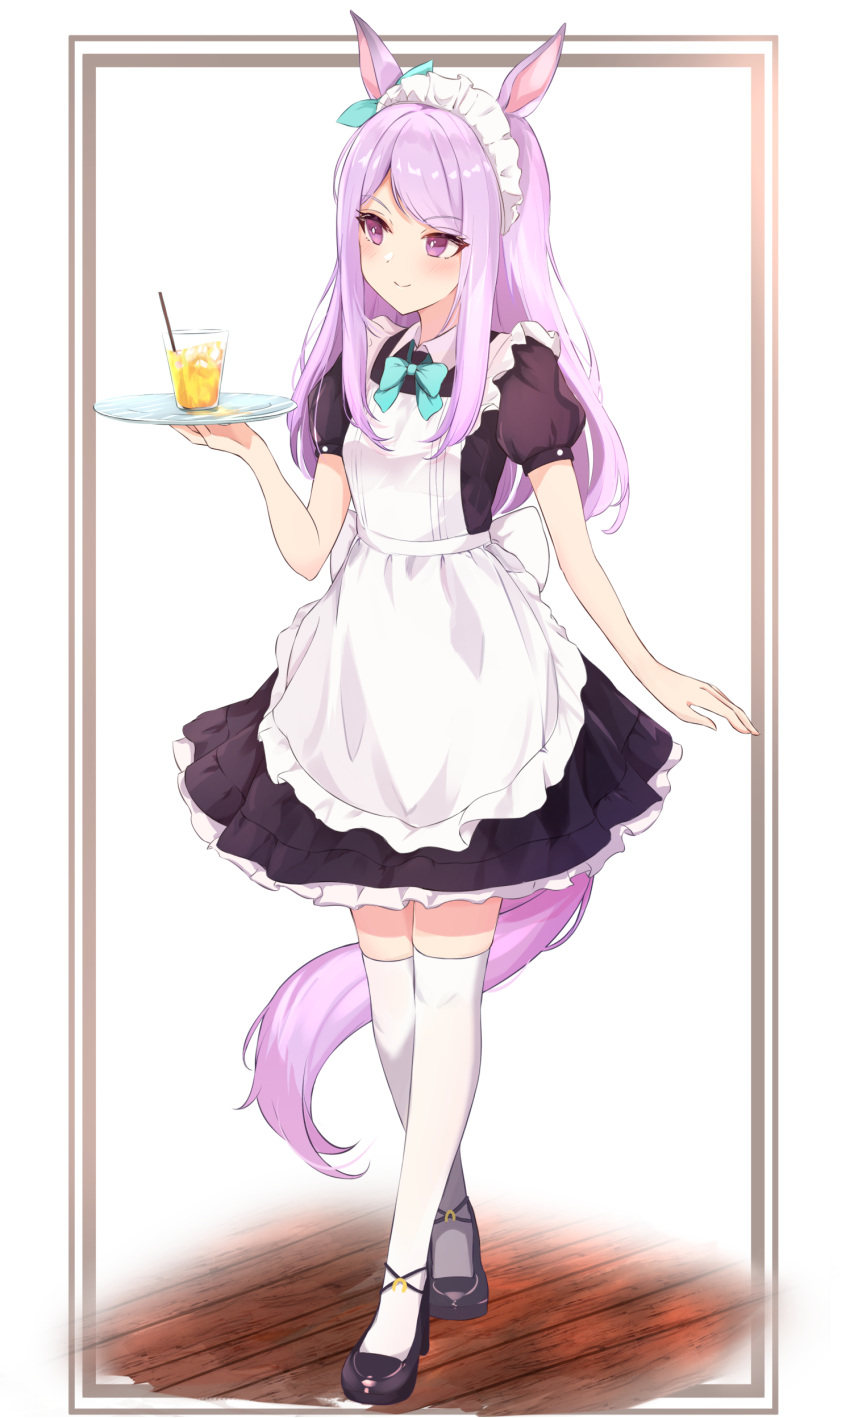 1girl absurdres alternate_costume animal_ears apron aqua_bow aqua_neckwear bangs black_dress black_footwear blush bow bowtie commentary cup dress drink enmaided eyebrows_visible_through_hair frilled_apron frilled_dress frills full_body hand_up highres holding holding_tray horse_ears horse_girl horse_tail long_hair looking_away maid maid_apron maid_headdress mejiro_mcqueen_(umamusume) puffy_short_sleeves puffy_sleeves purple_hair shoes short_sleeves simple_background sky_cappuccino smile solo standing swept_bangs tail thigh-highs tray umamusume violet_eyes white_apron white_legwear